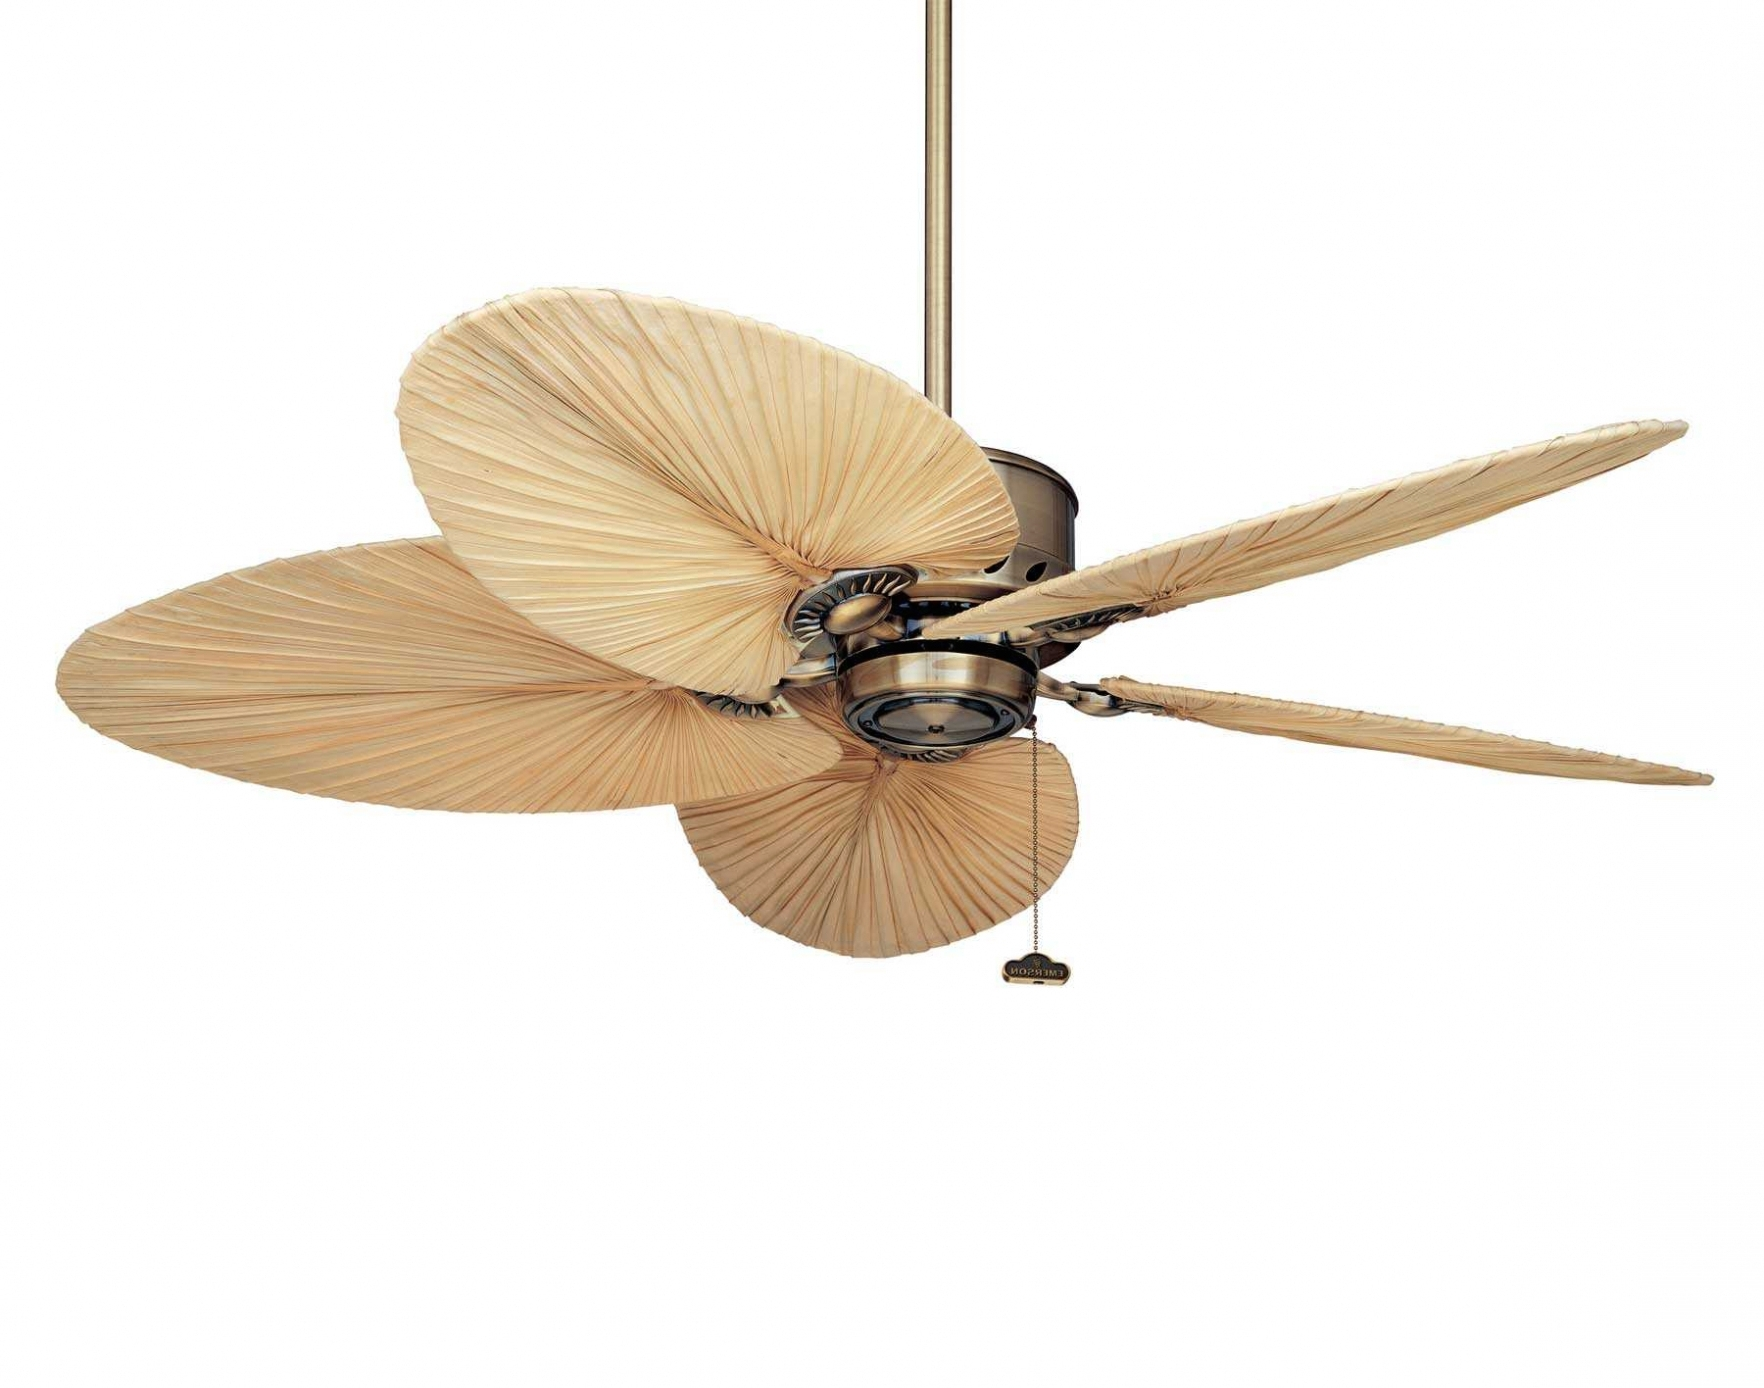 Tropical Outdoor Ceiling Fans With Lights Inside Most Recent Tips: Tropical Outdoor Ceiling Fans With Lights White Fan 2018 And (View 14 of 20)